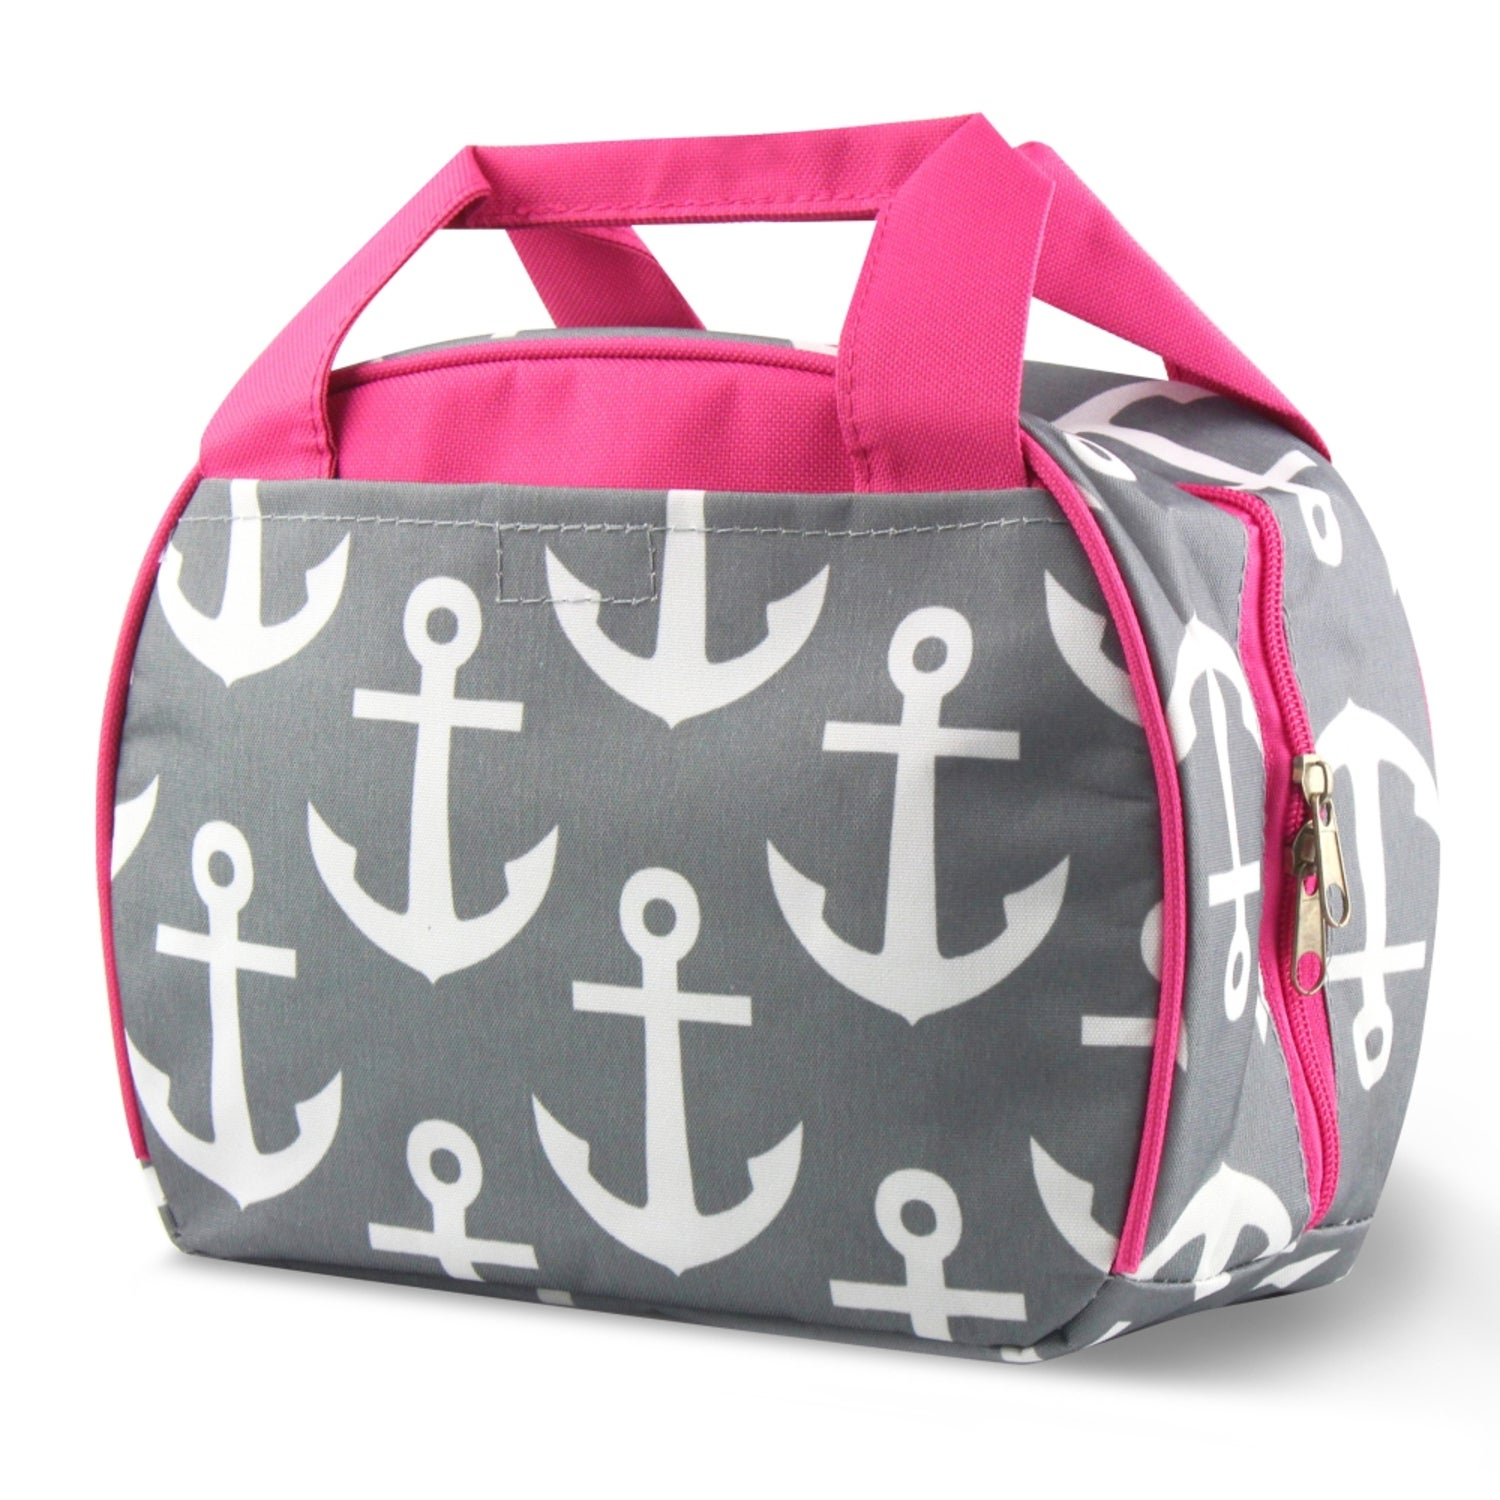 Zodaca Grey Anchors with Pink Trim Small Reusable Insulat...